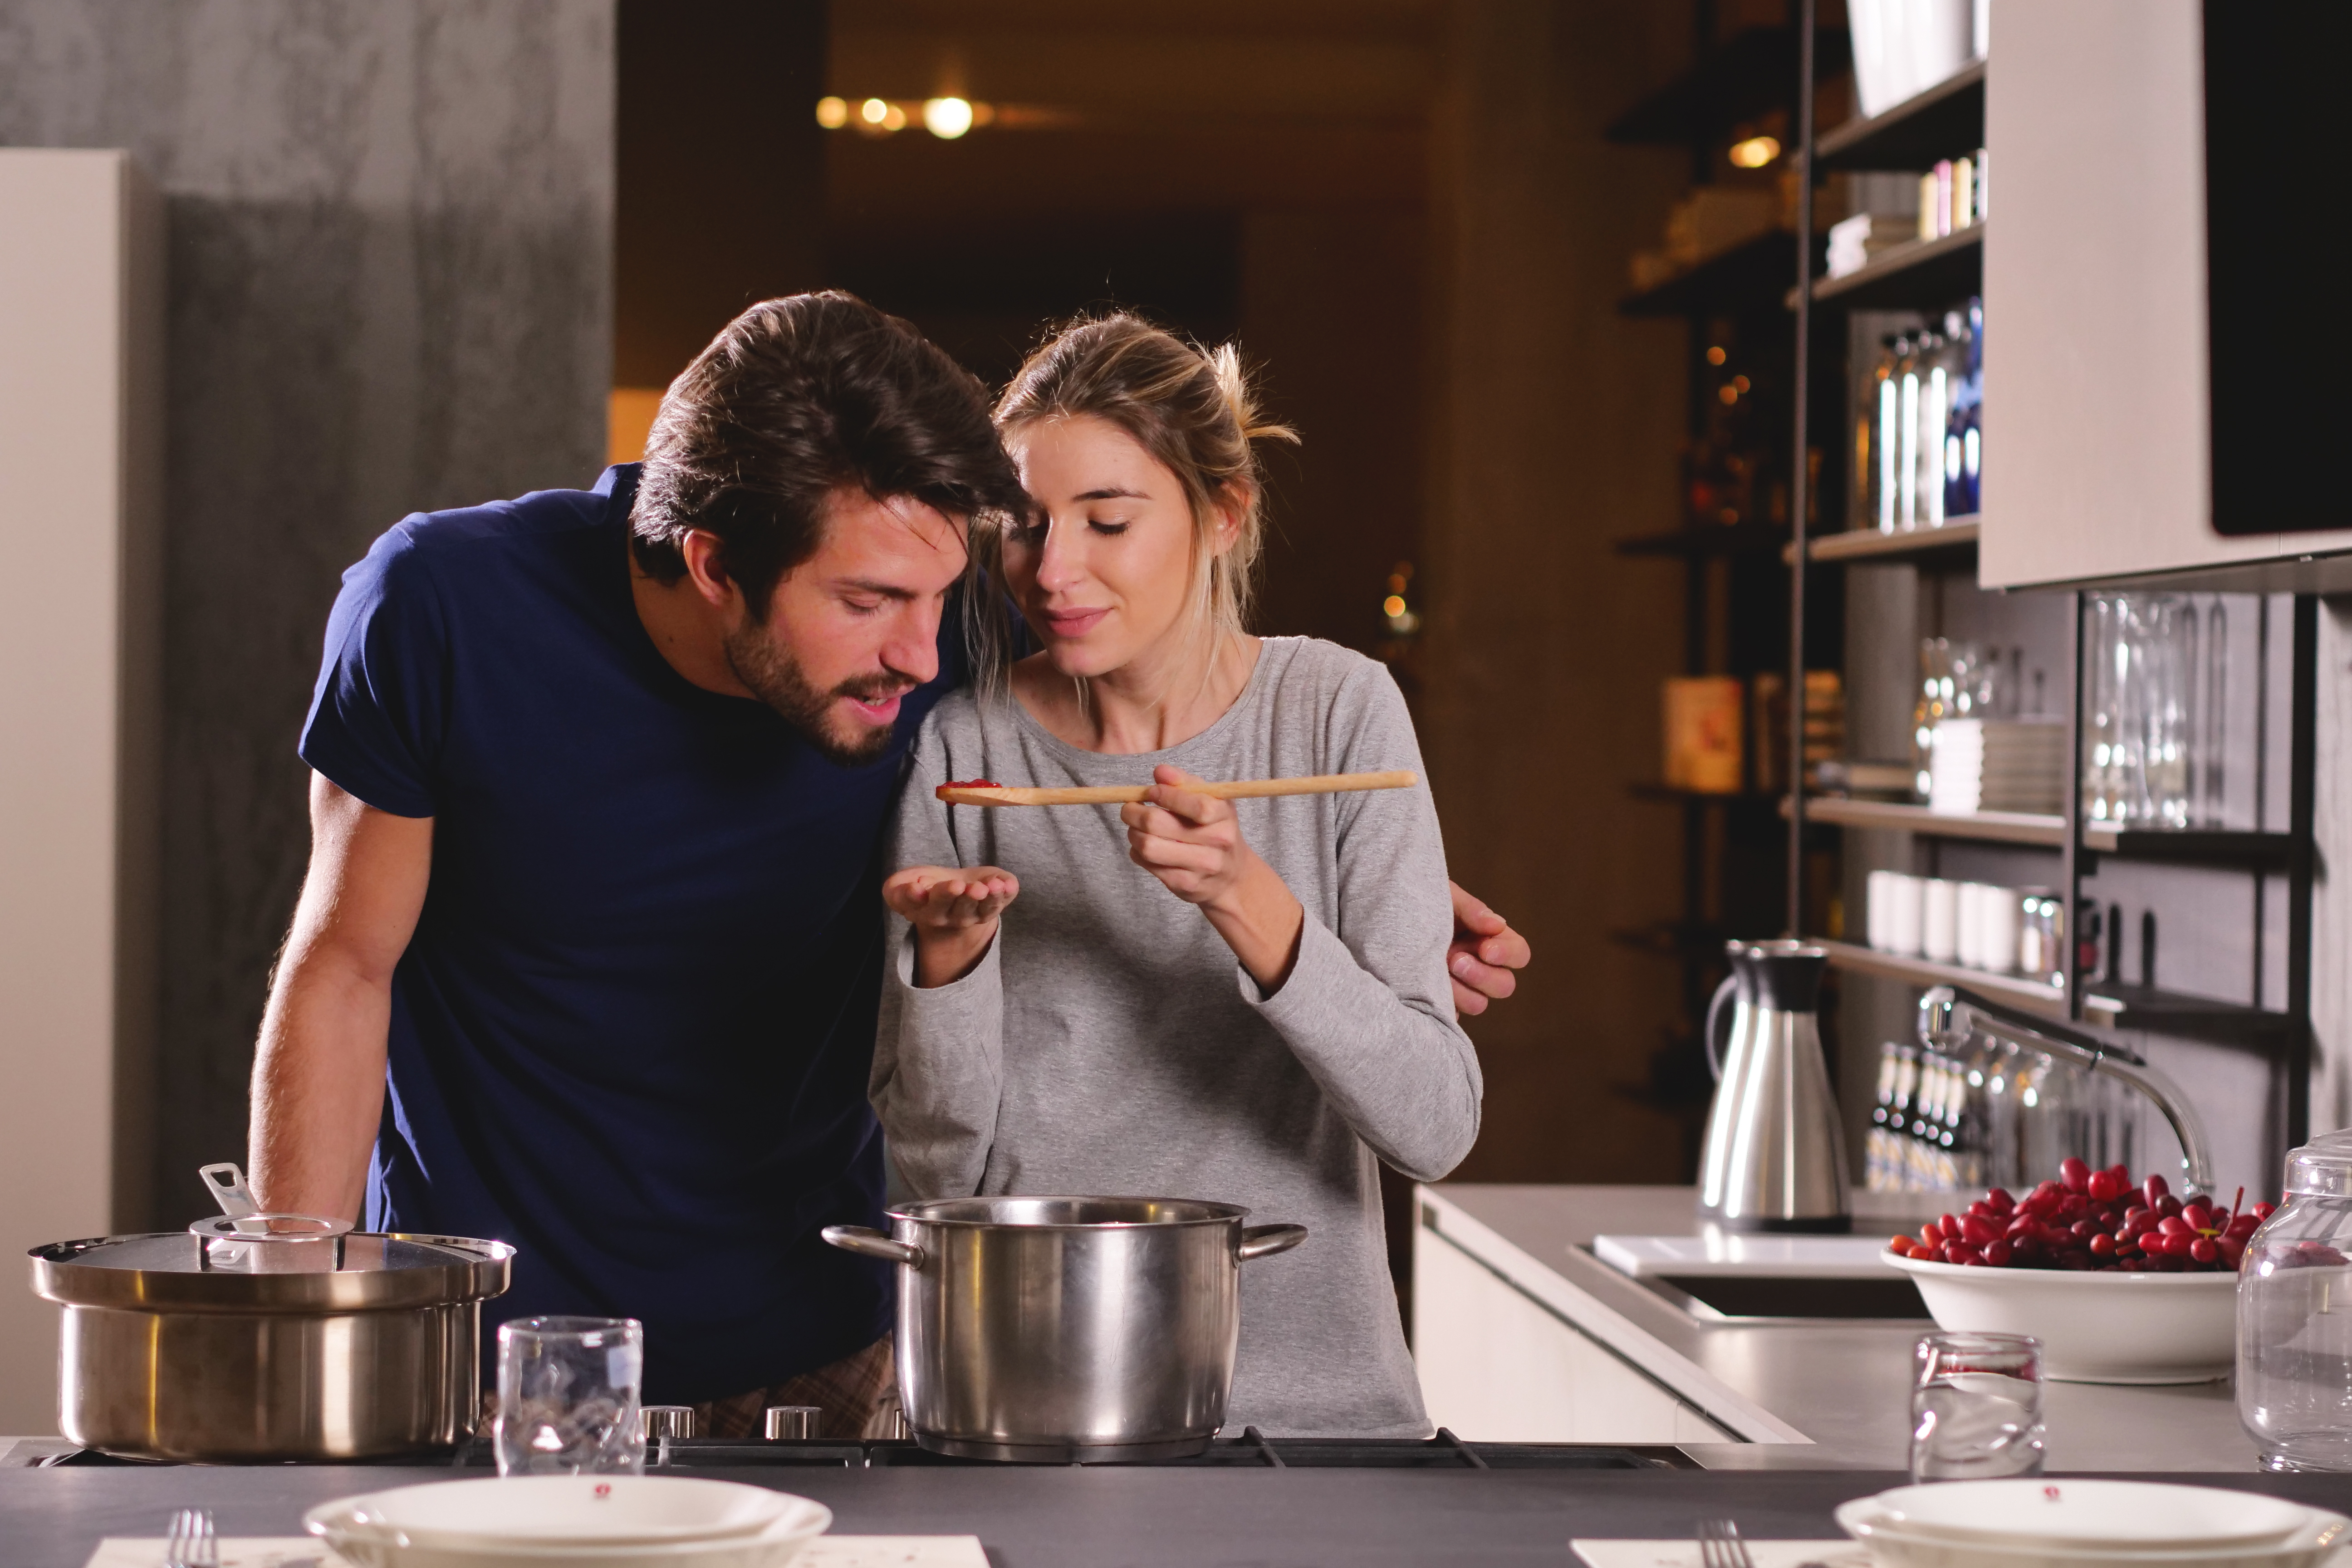 Cooking_Together